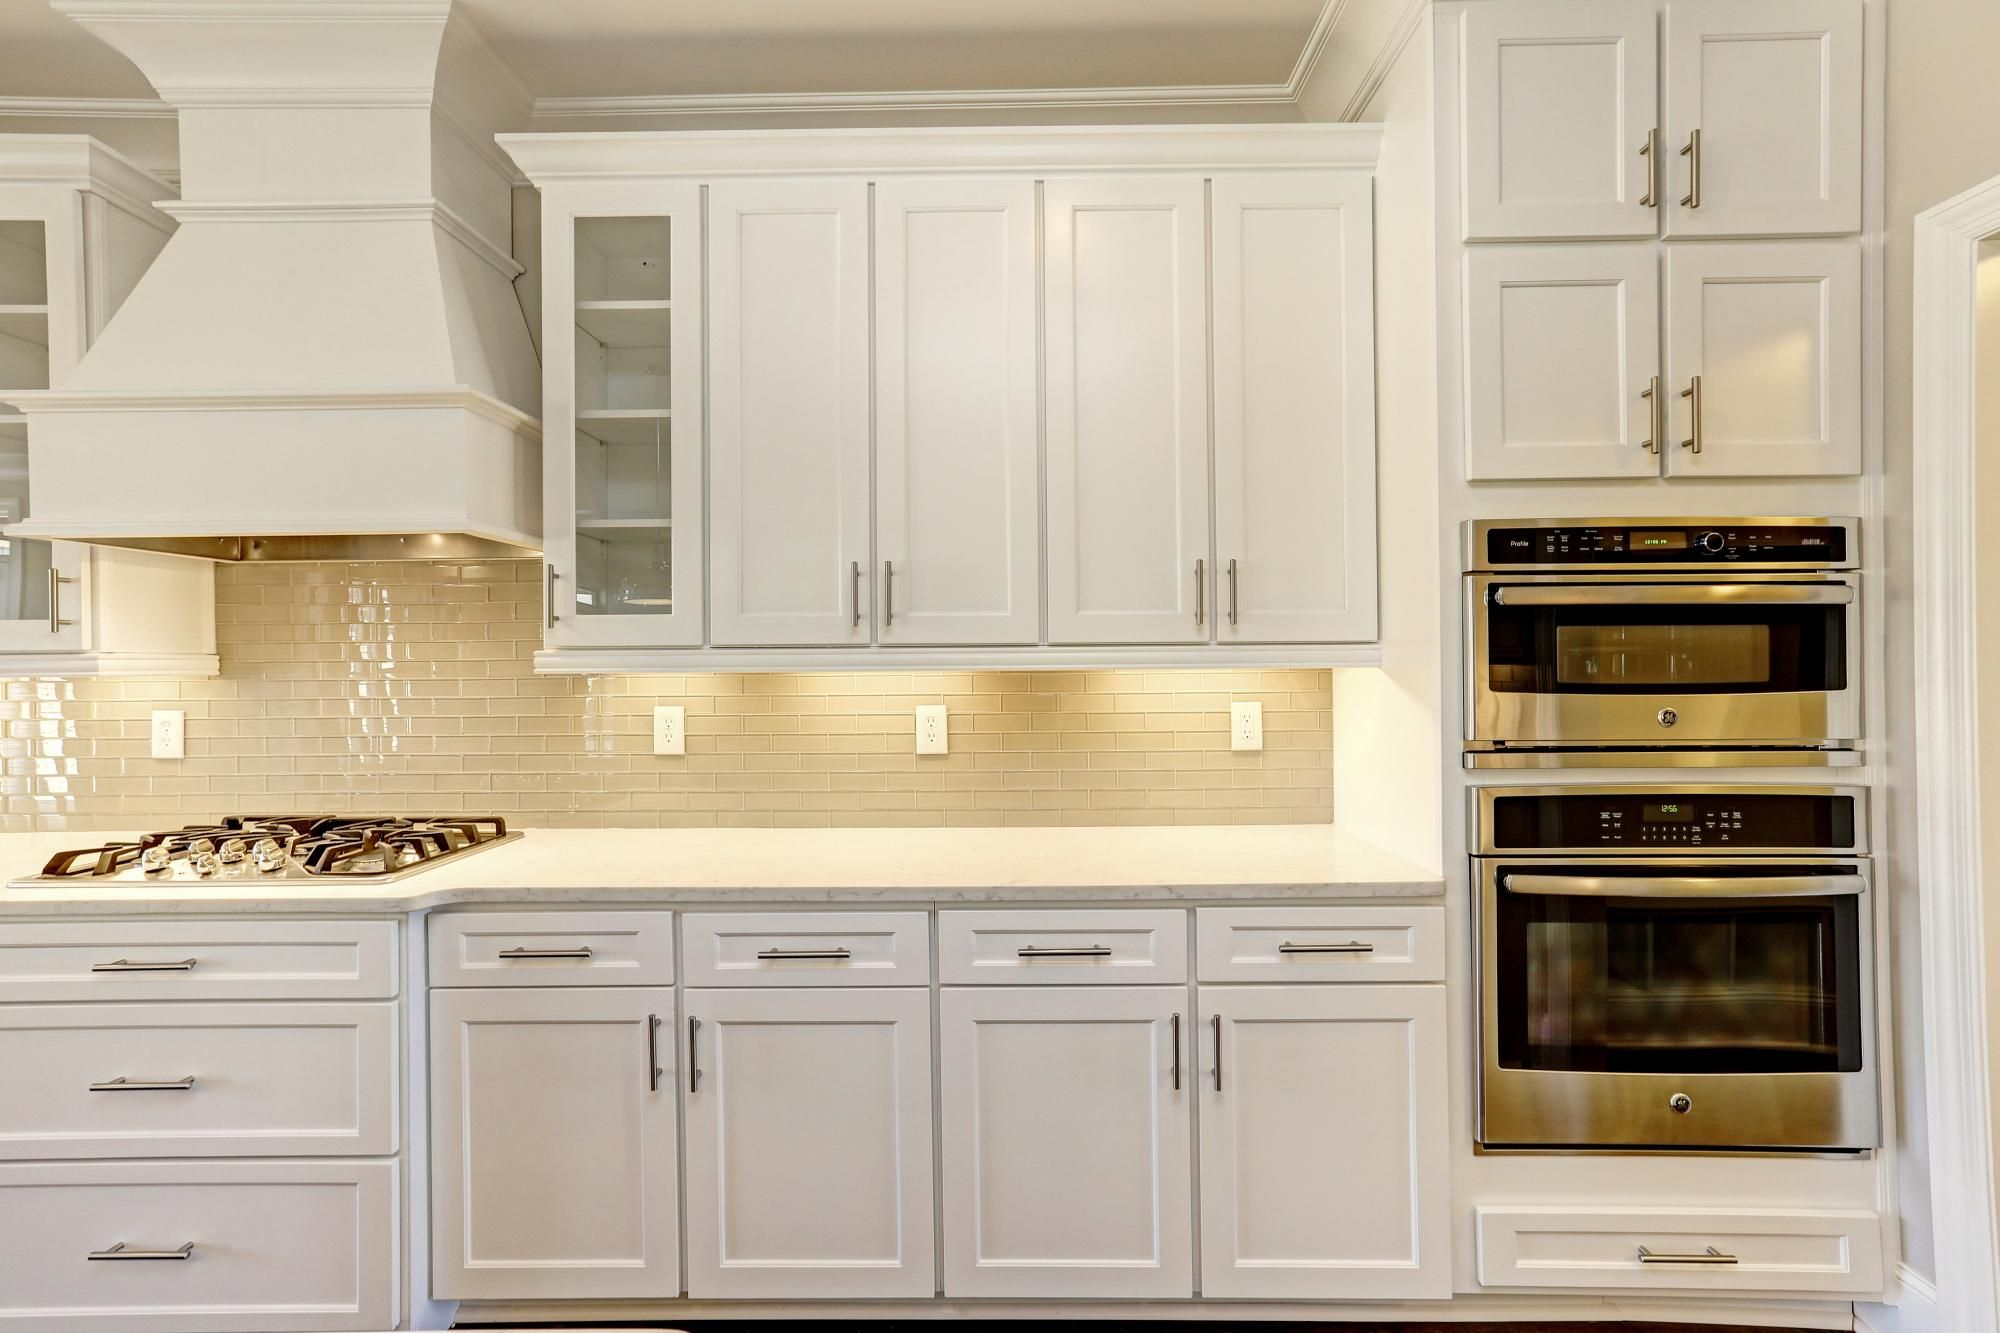 Photo Gallery New Homes Huntsville Al Jeff Benton Homes Kitchen Photos Madison Homes Cool Kitchens